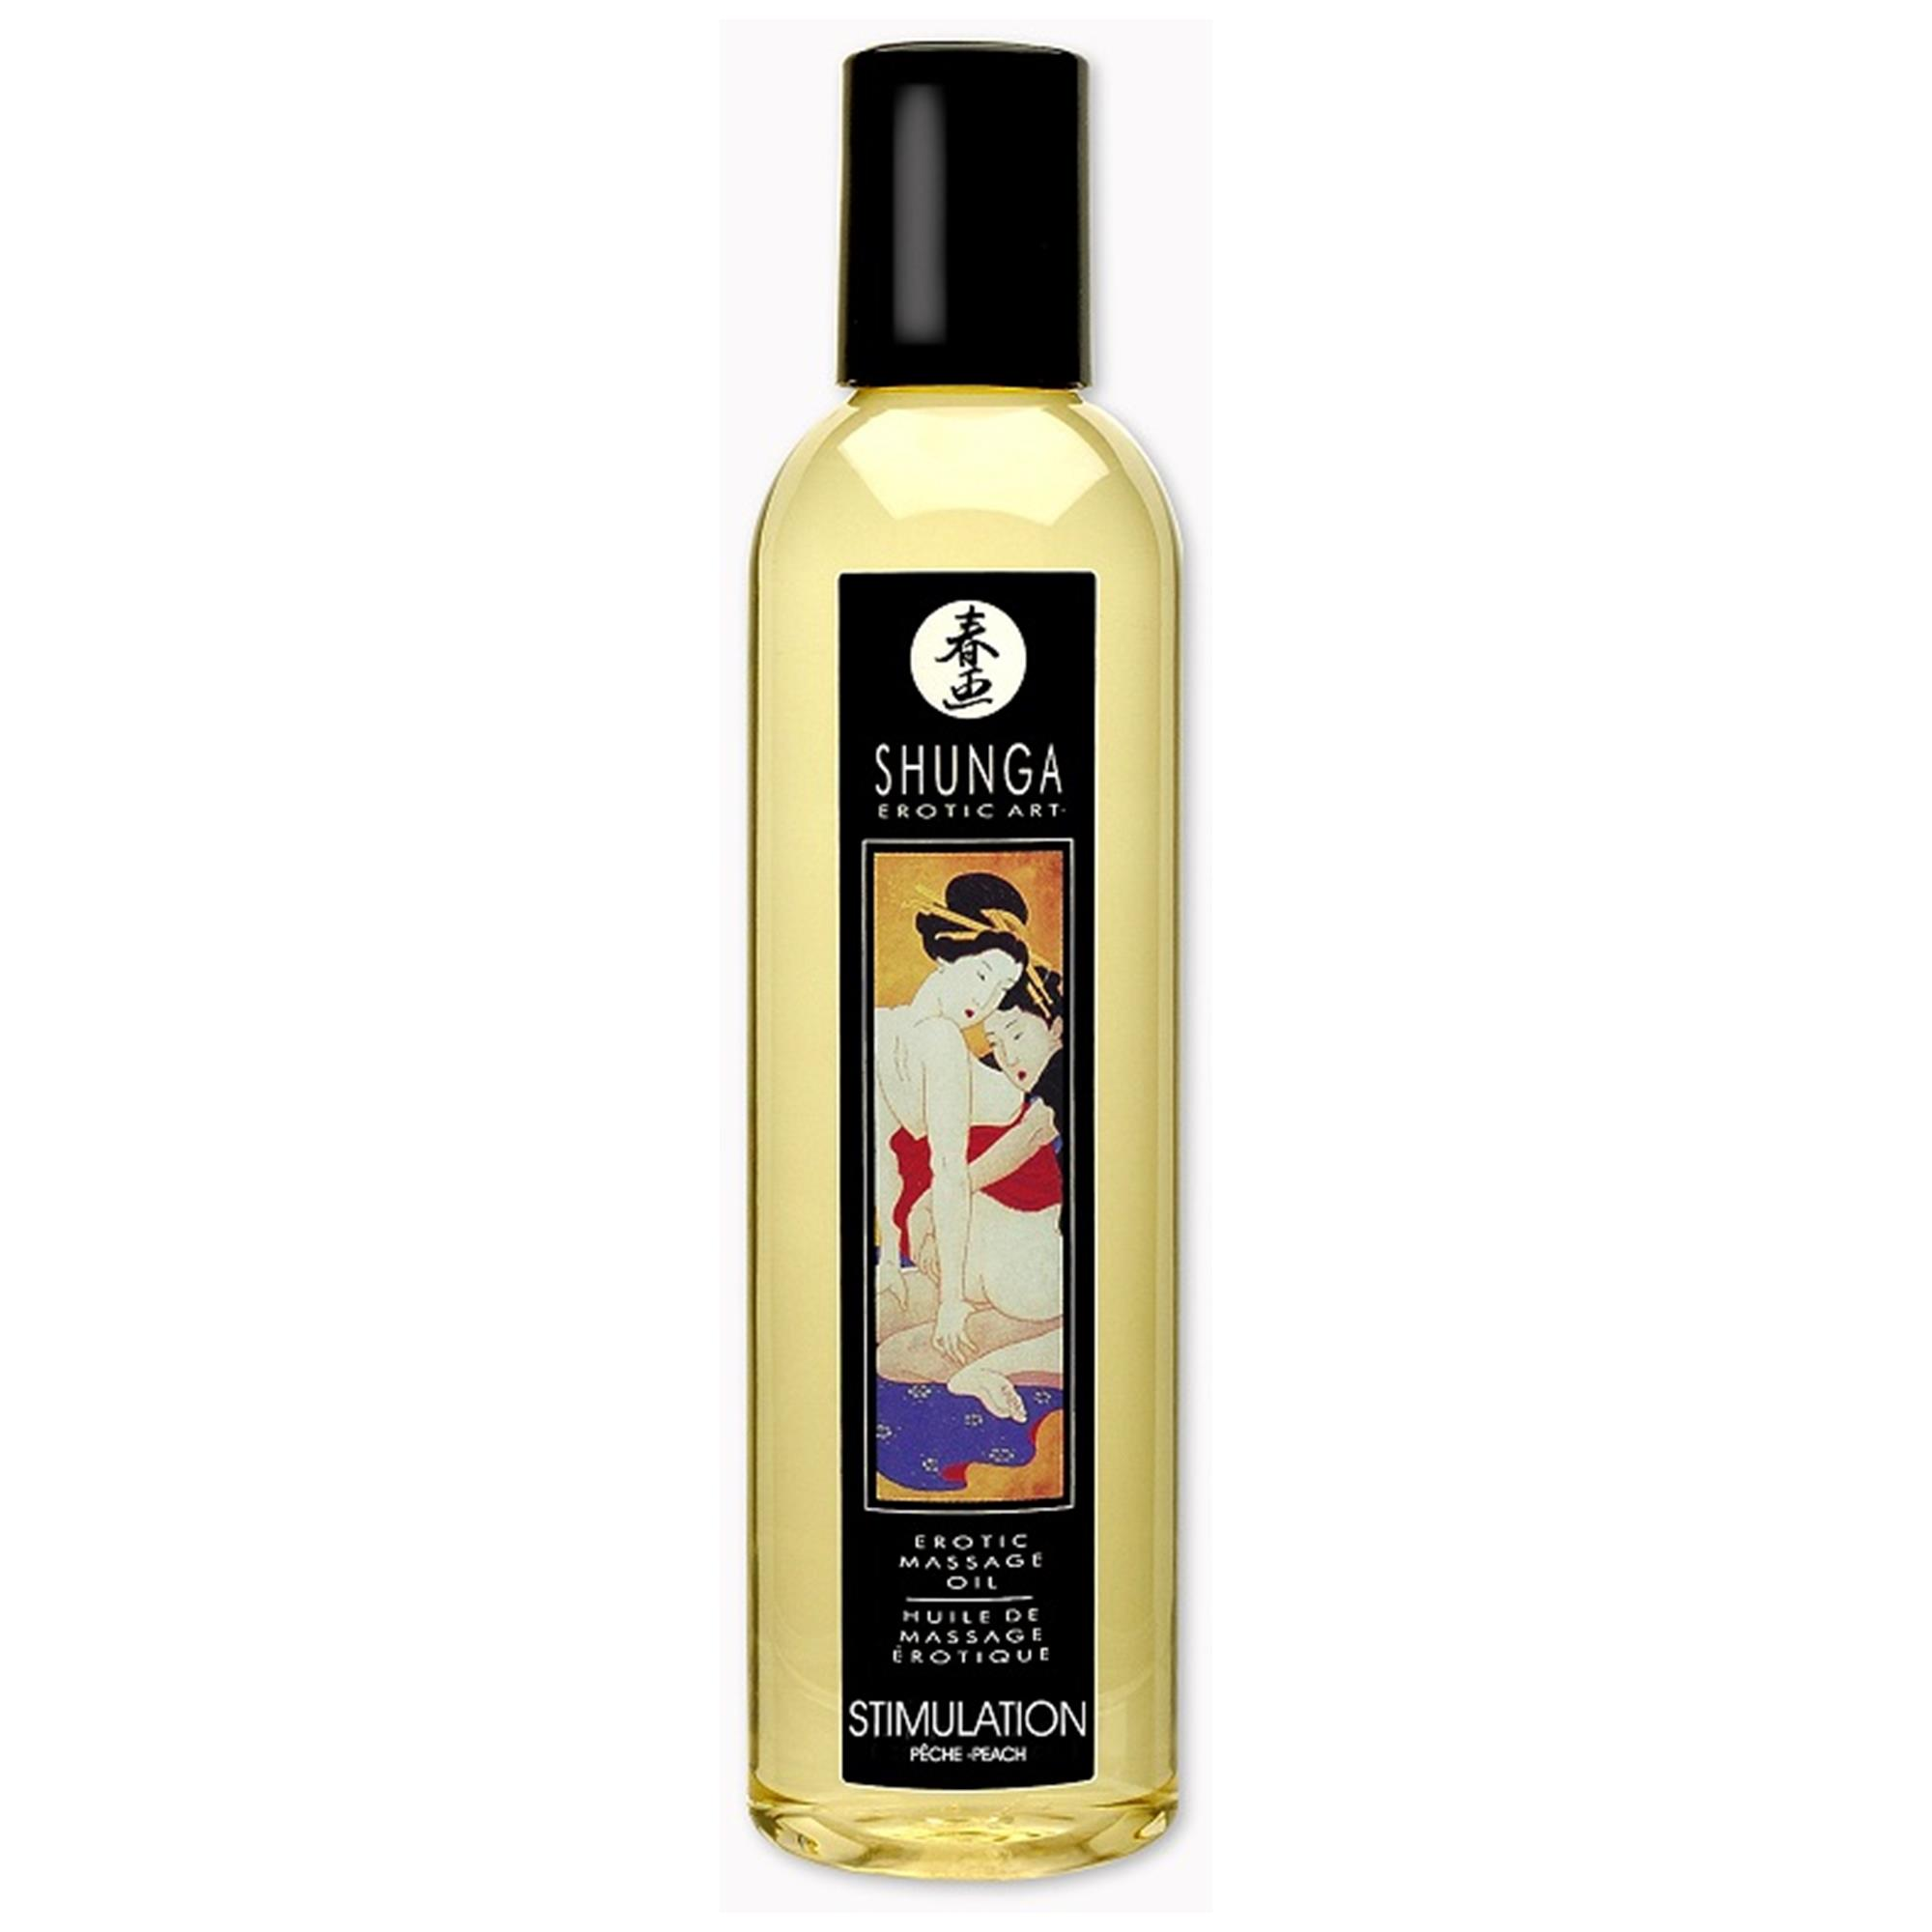 Massage Oil Erotic Peach - Stimulation | Apotek, Massage, Massageolja | Intimast.se - Sexleksaker